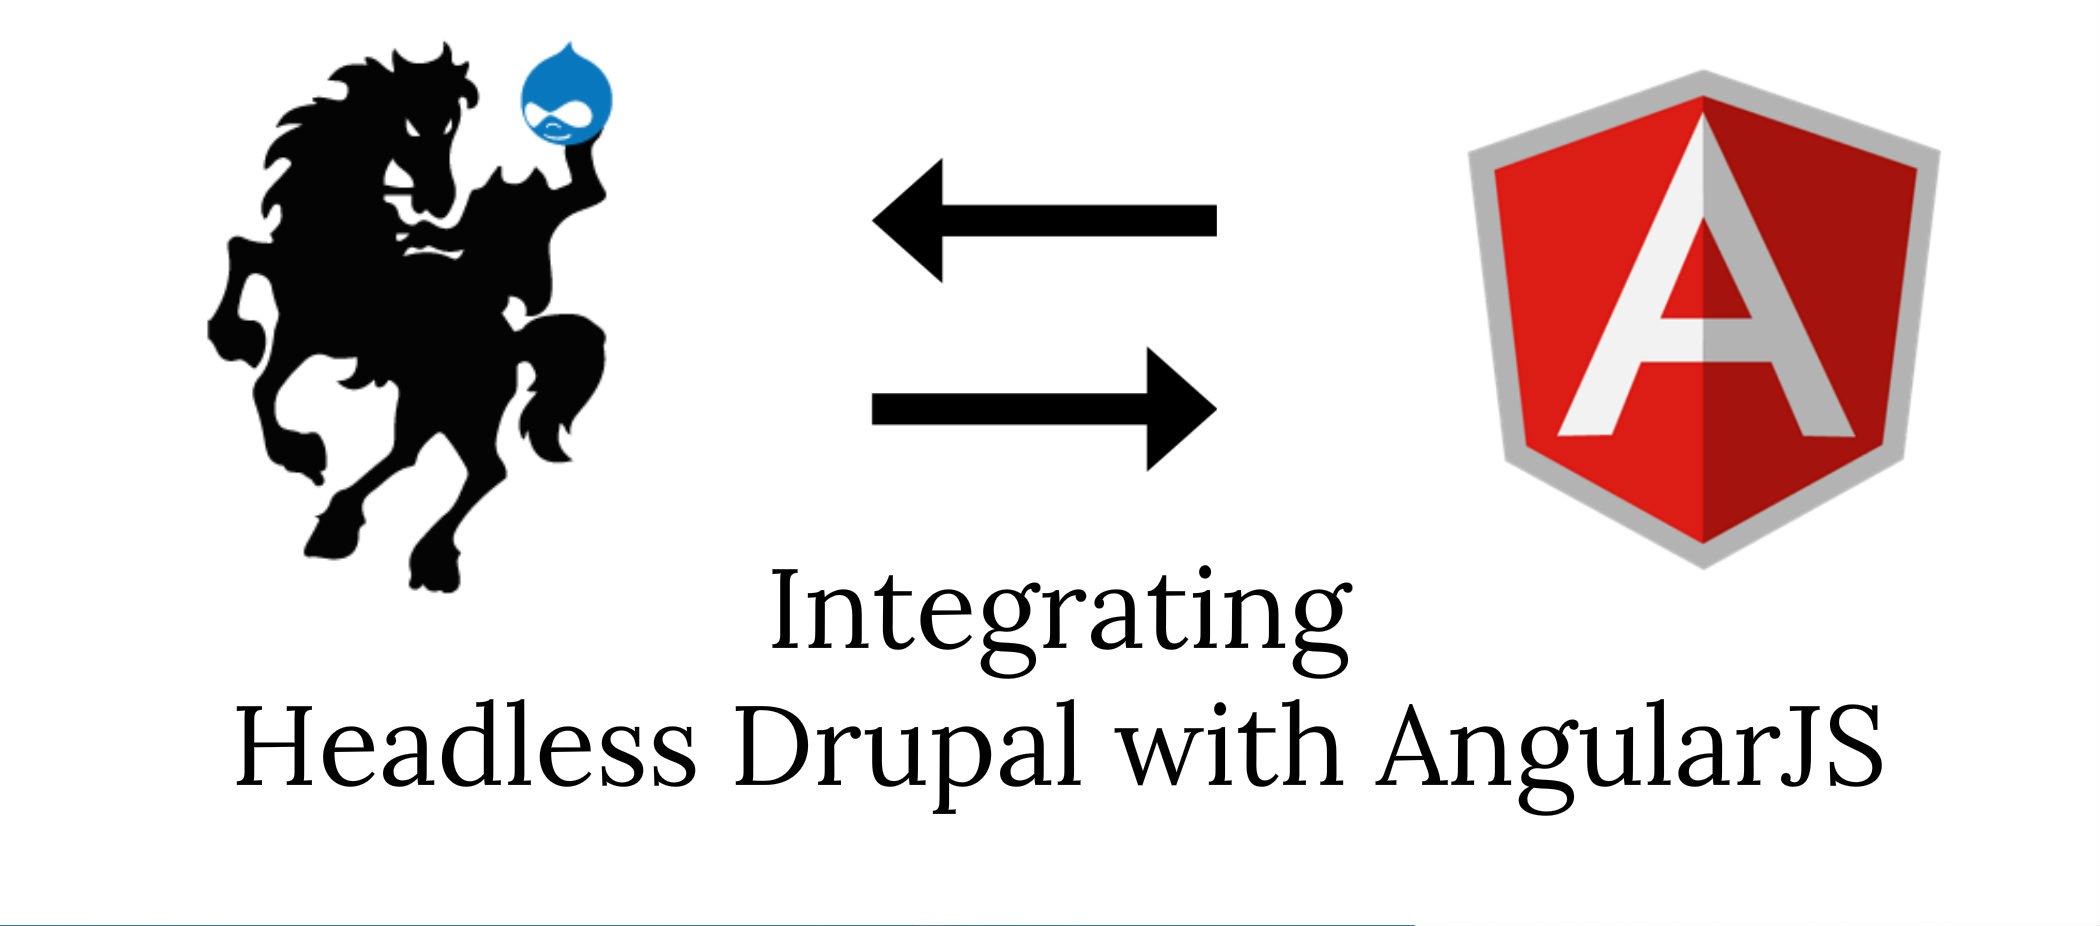 Integrating Headless Drupal with AngularJS